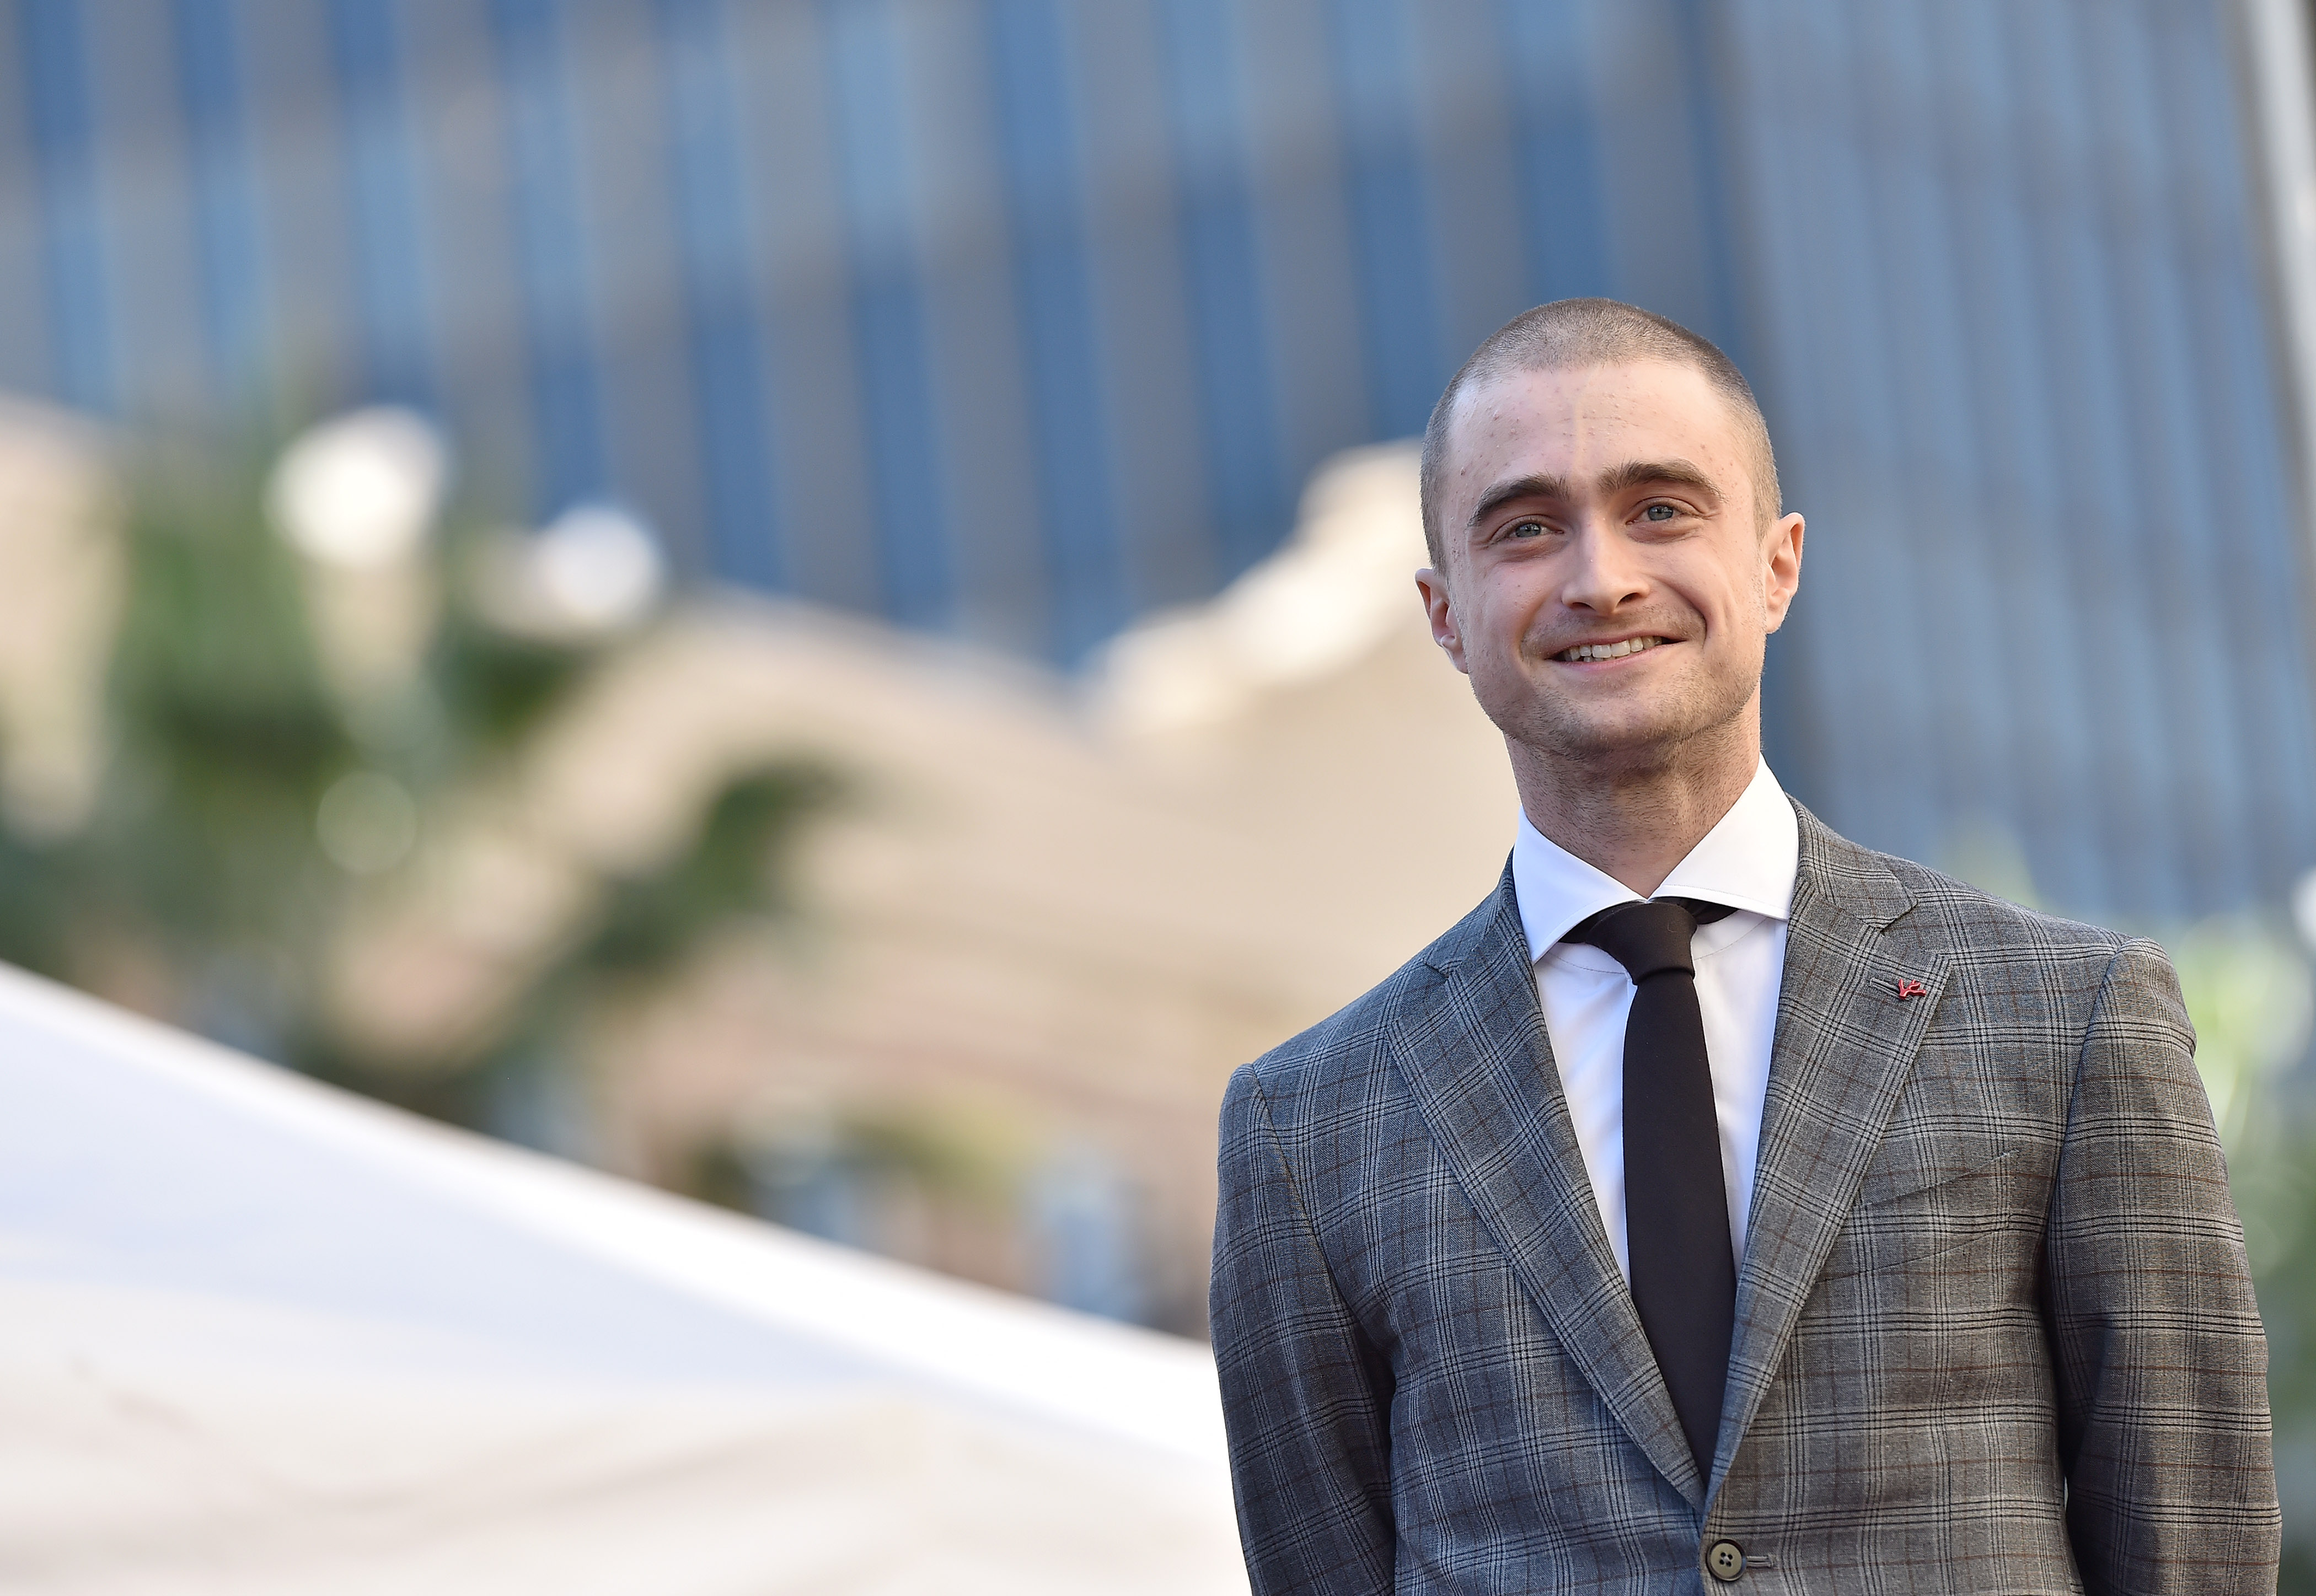 Daniel Radcliffe is honored with a star on the Hollywood Walk of Fame in Hollywood on Nov. 12, 2015.